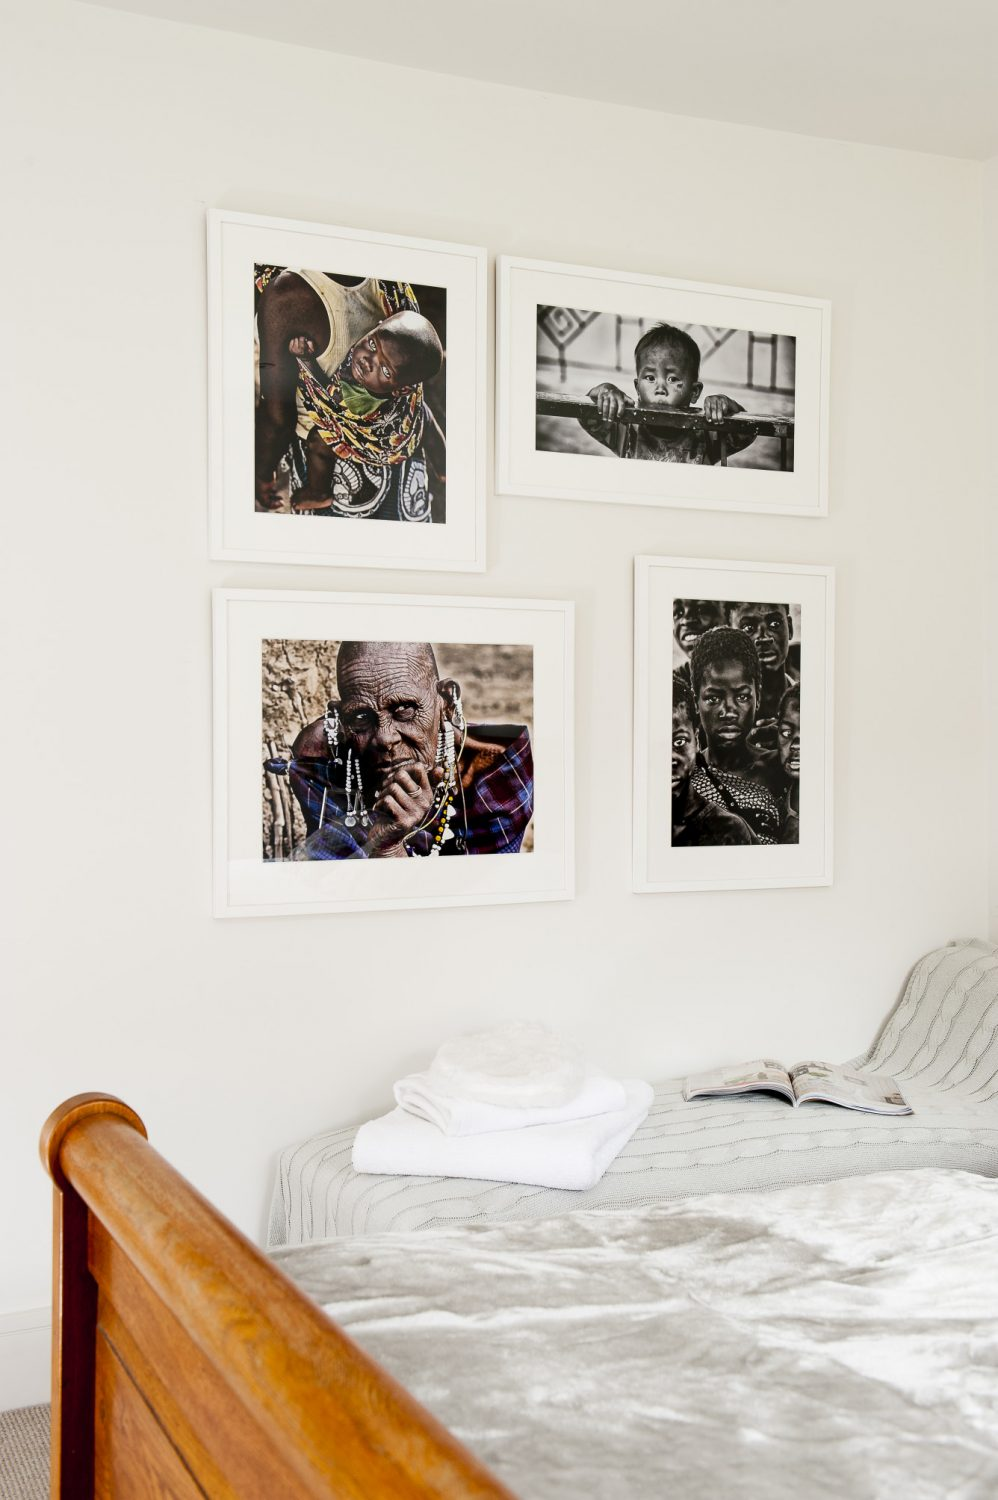 Ali's photographs, taken on her travels, are on display throughout the house